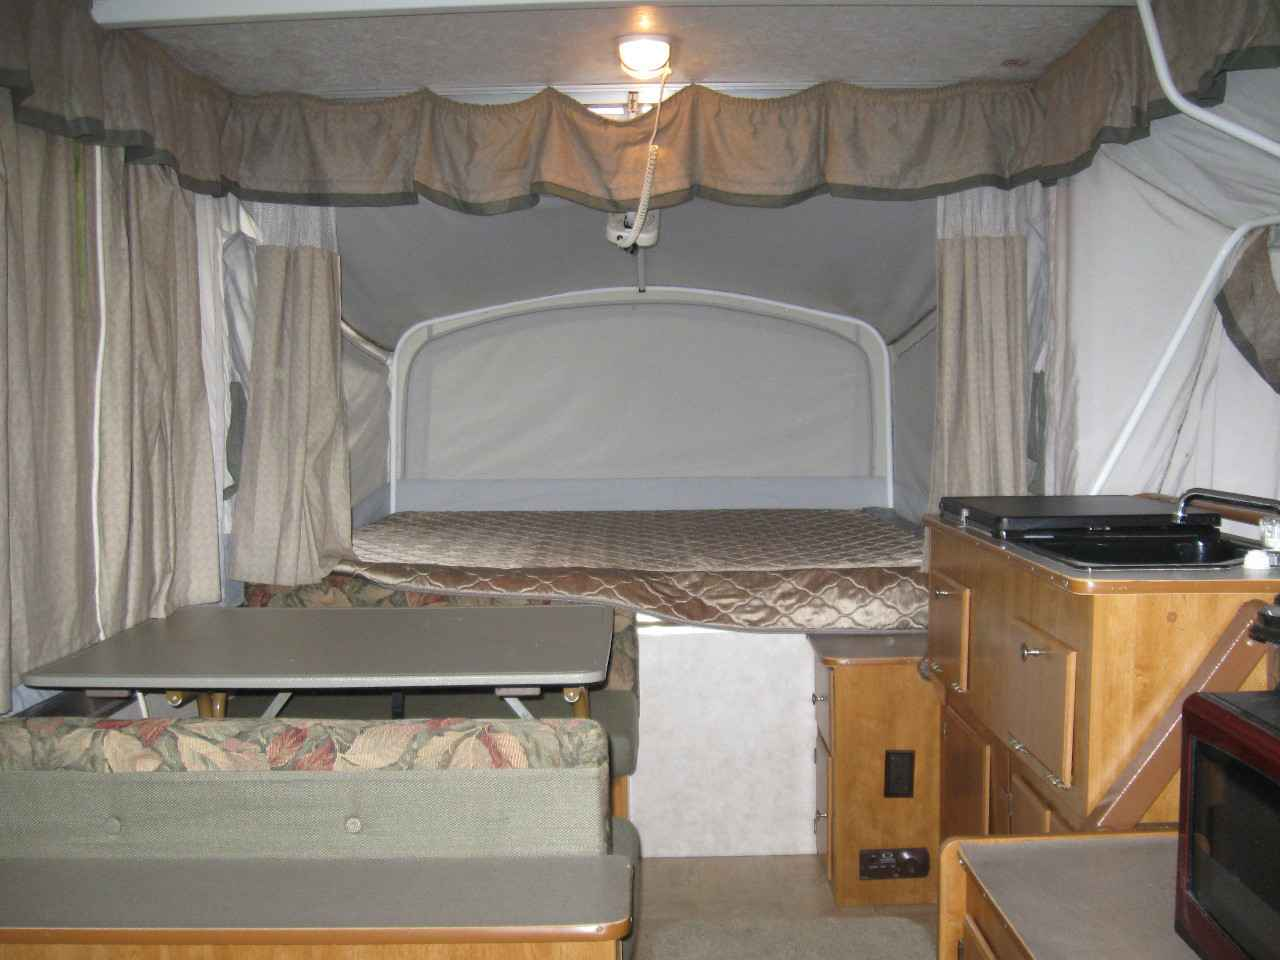 2006 Used Fleetwood Americana Sun Valley Pop Up Camper In